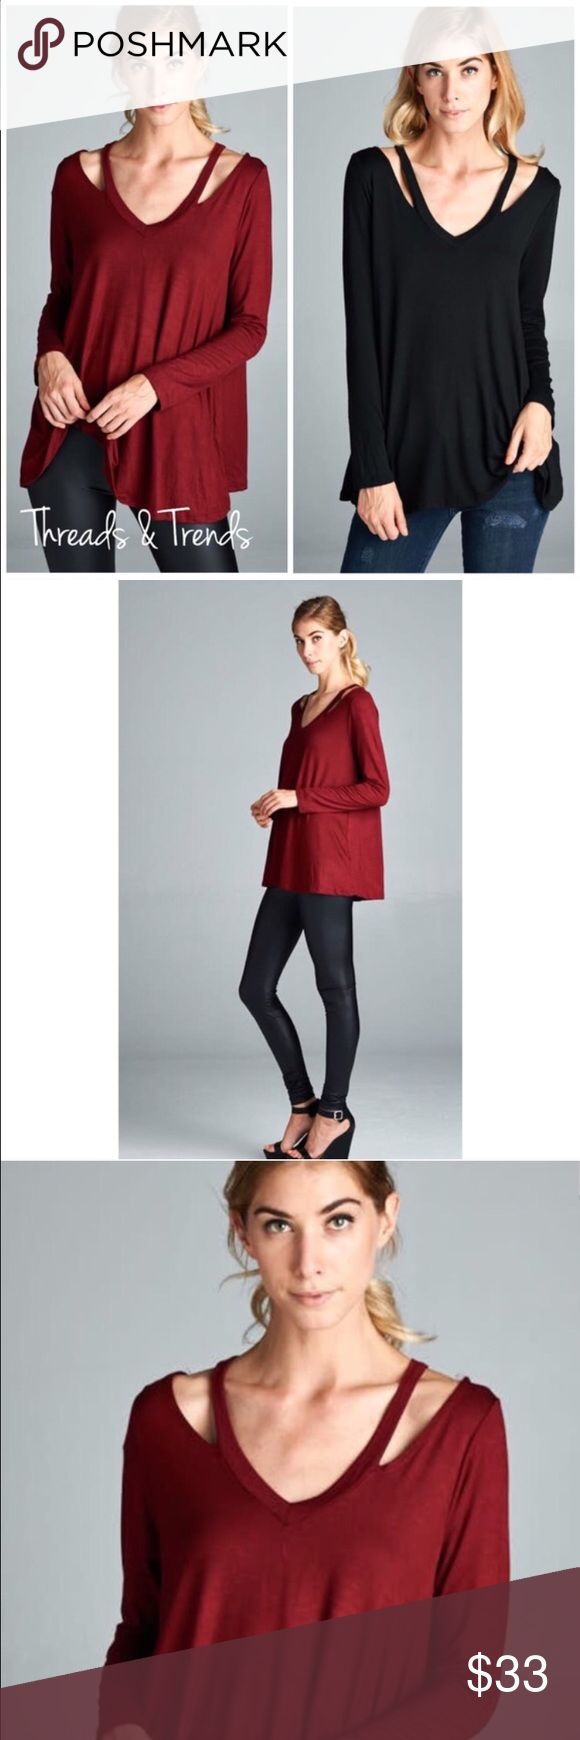 """Strappy N Neck Top A fresh new look to the long sleeve Top. Strappy is trending with this unique twist to the V neckline top. Made of rayon and spandex.                                         Colors black & burgundy.                                  Small bust 34"""" Length 27""""  Medium Bust 36"""" Length 27""""  Large Bust 38"""" Length 27"""" fabric stretches an extra 2 inches . Tops Tees - Long Sleeve"""